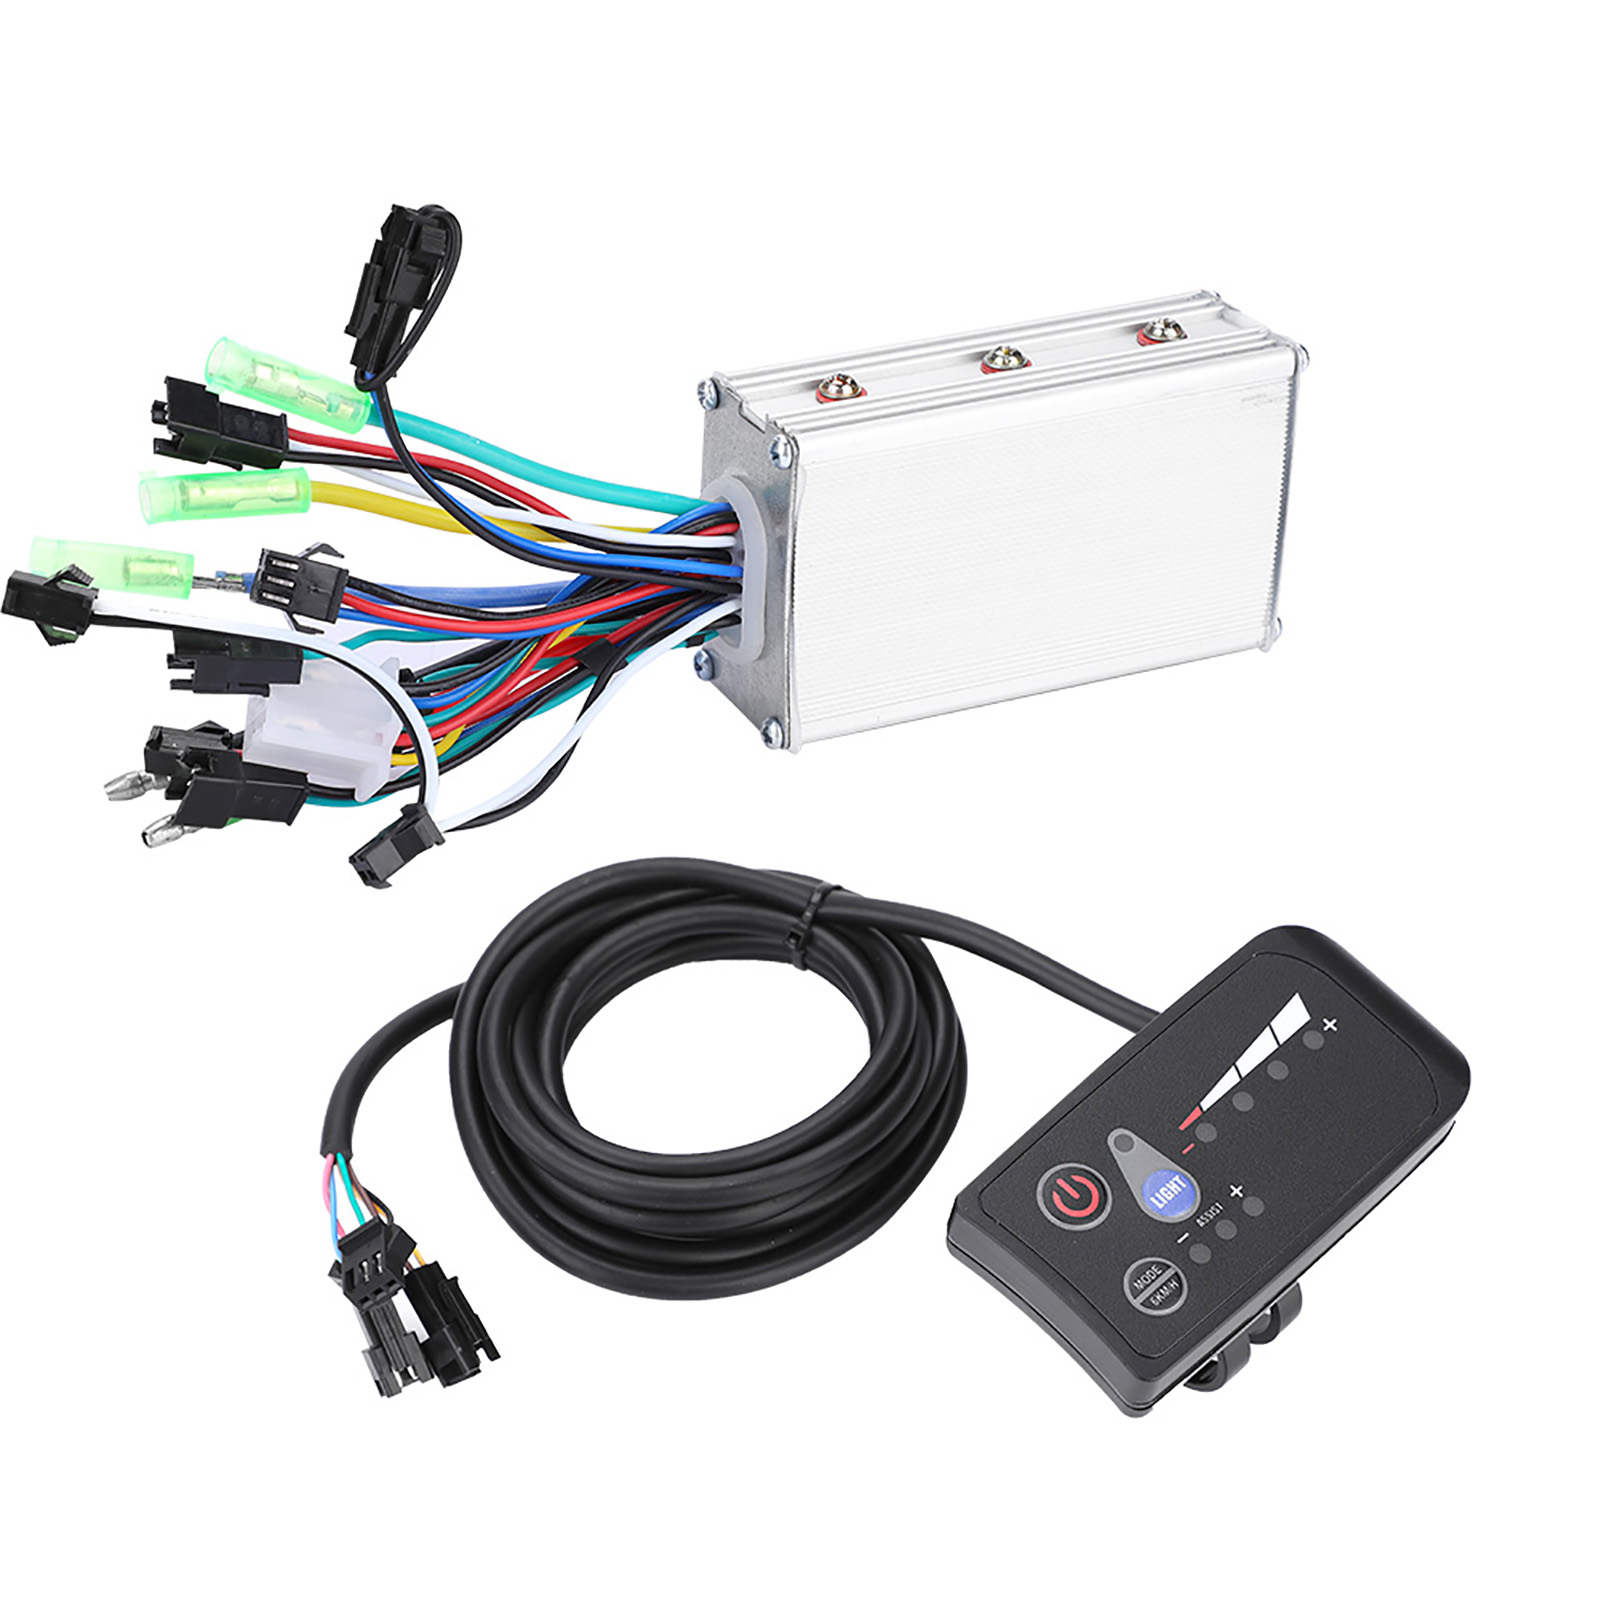 24-36-48V-250W-350W-LED-Electric-Bike-Scooter-Brushless-DC-Motor-Controller-SD thumbnail 12